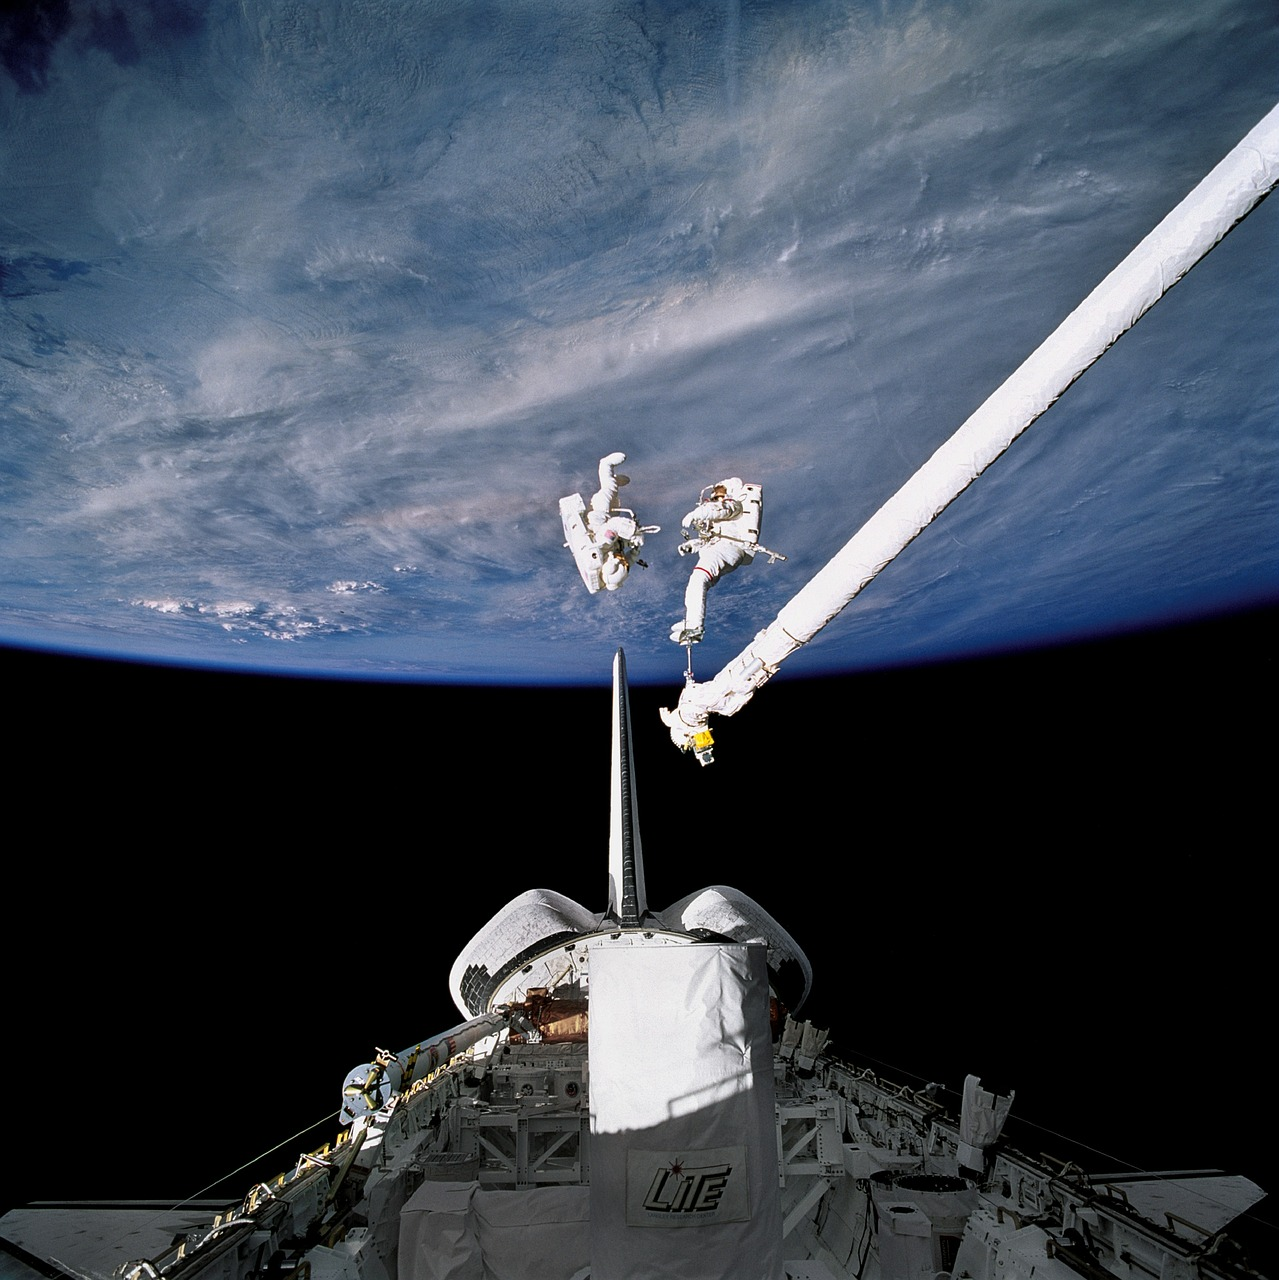 astronauts,spacewalk,space,spacecraft,tools,suit,pack,tether,floating,job,maintenance,extravehicular activity,eva,earth,free pictures, free photos, free images, royalty free, free illustrations, public domain